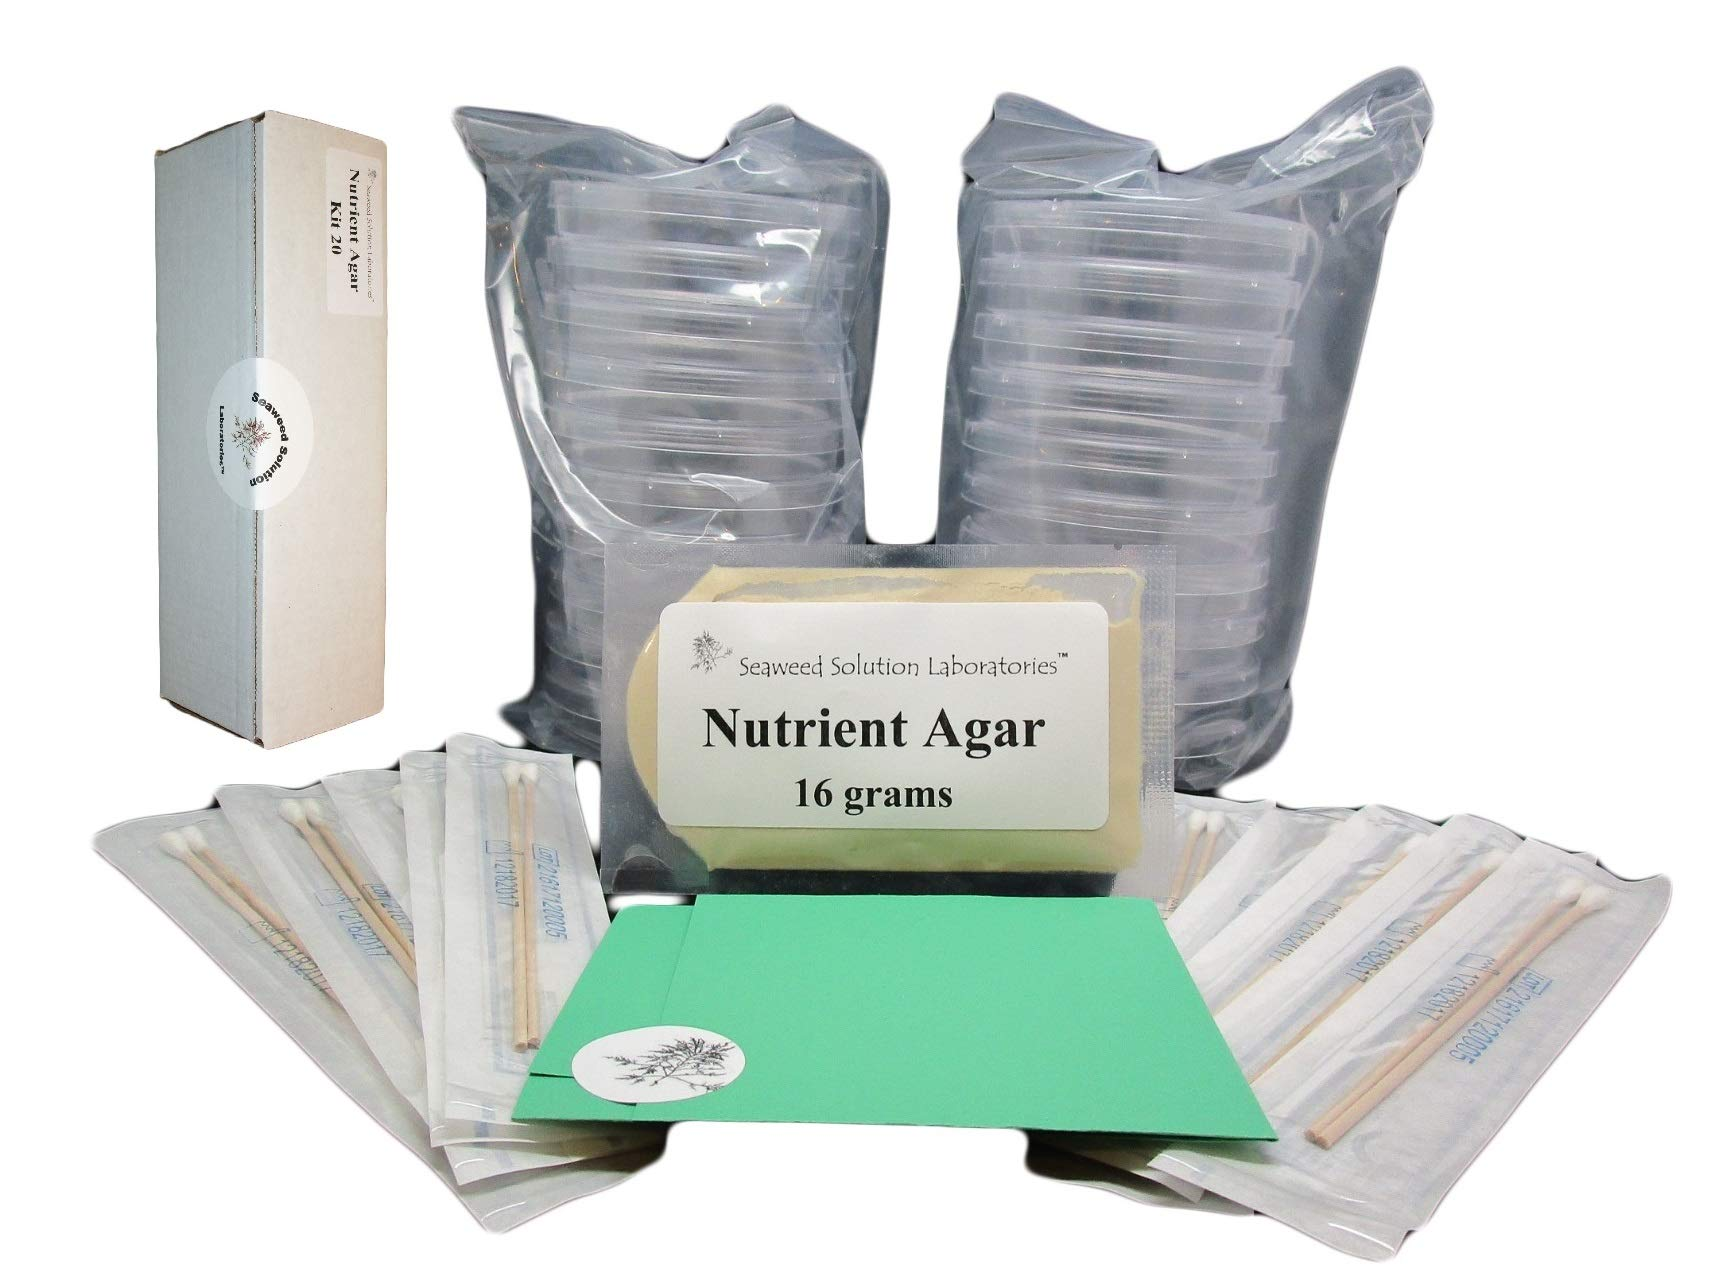 Nutrient Agar Kit, Includes 20 Sterile Petri Dishes with Lids & 20 Sterile Cotton Swabs